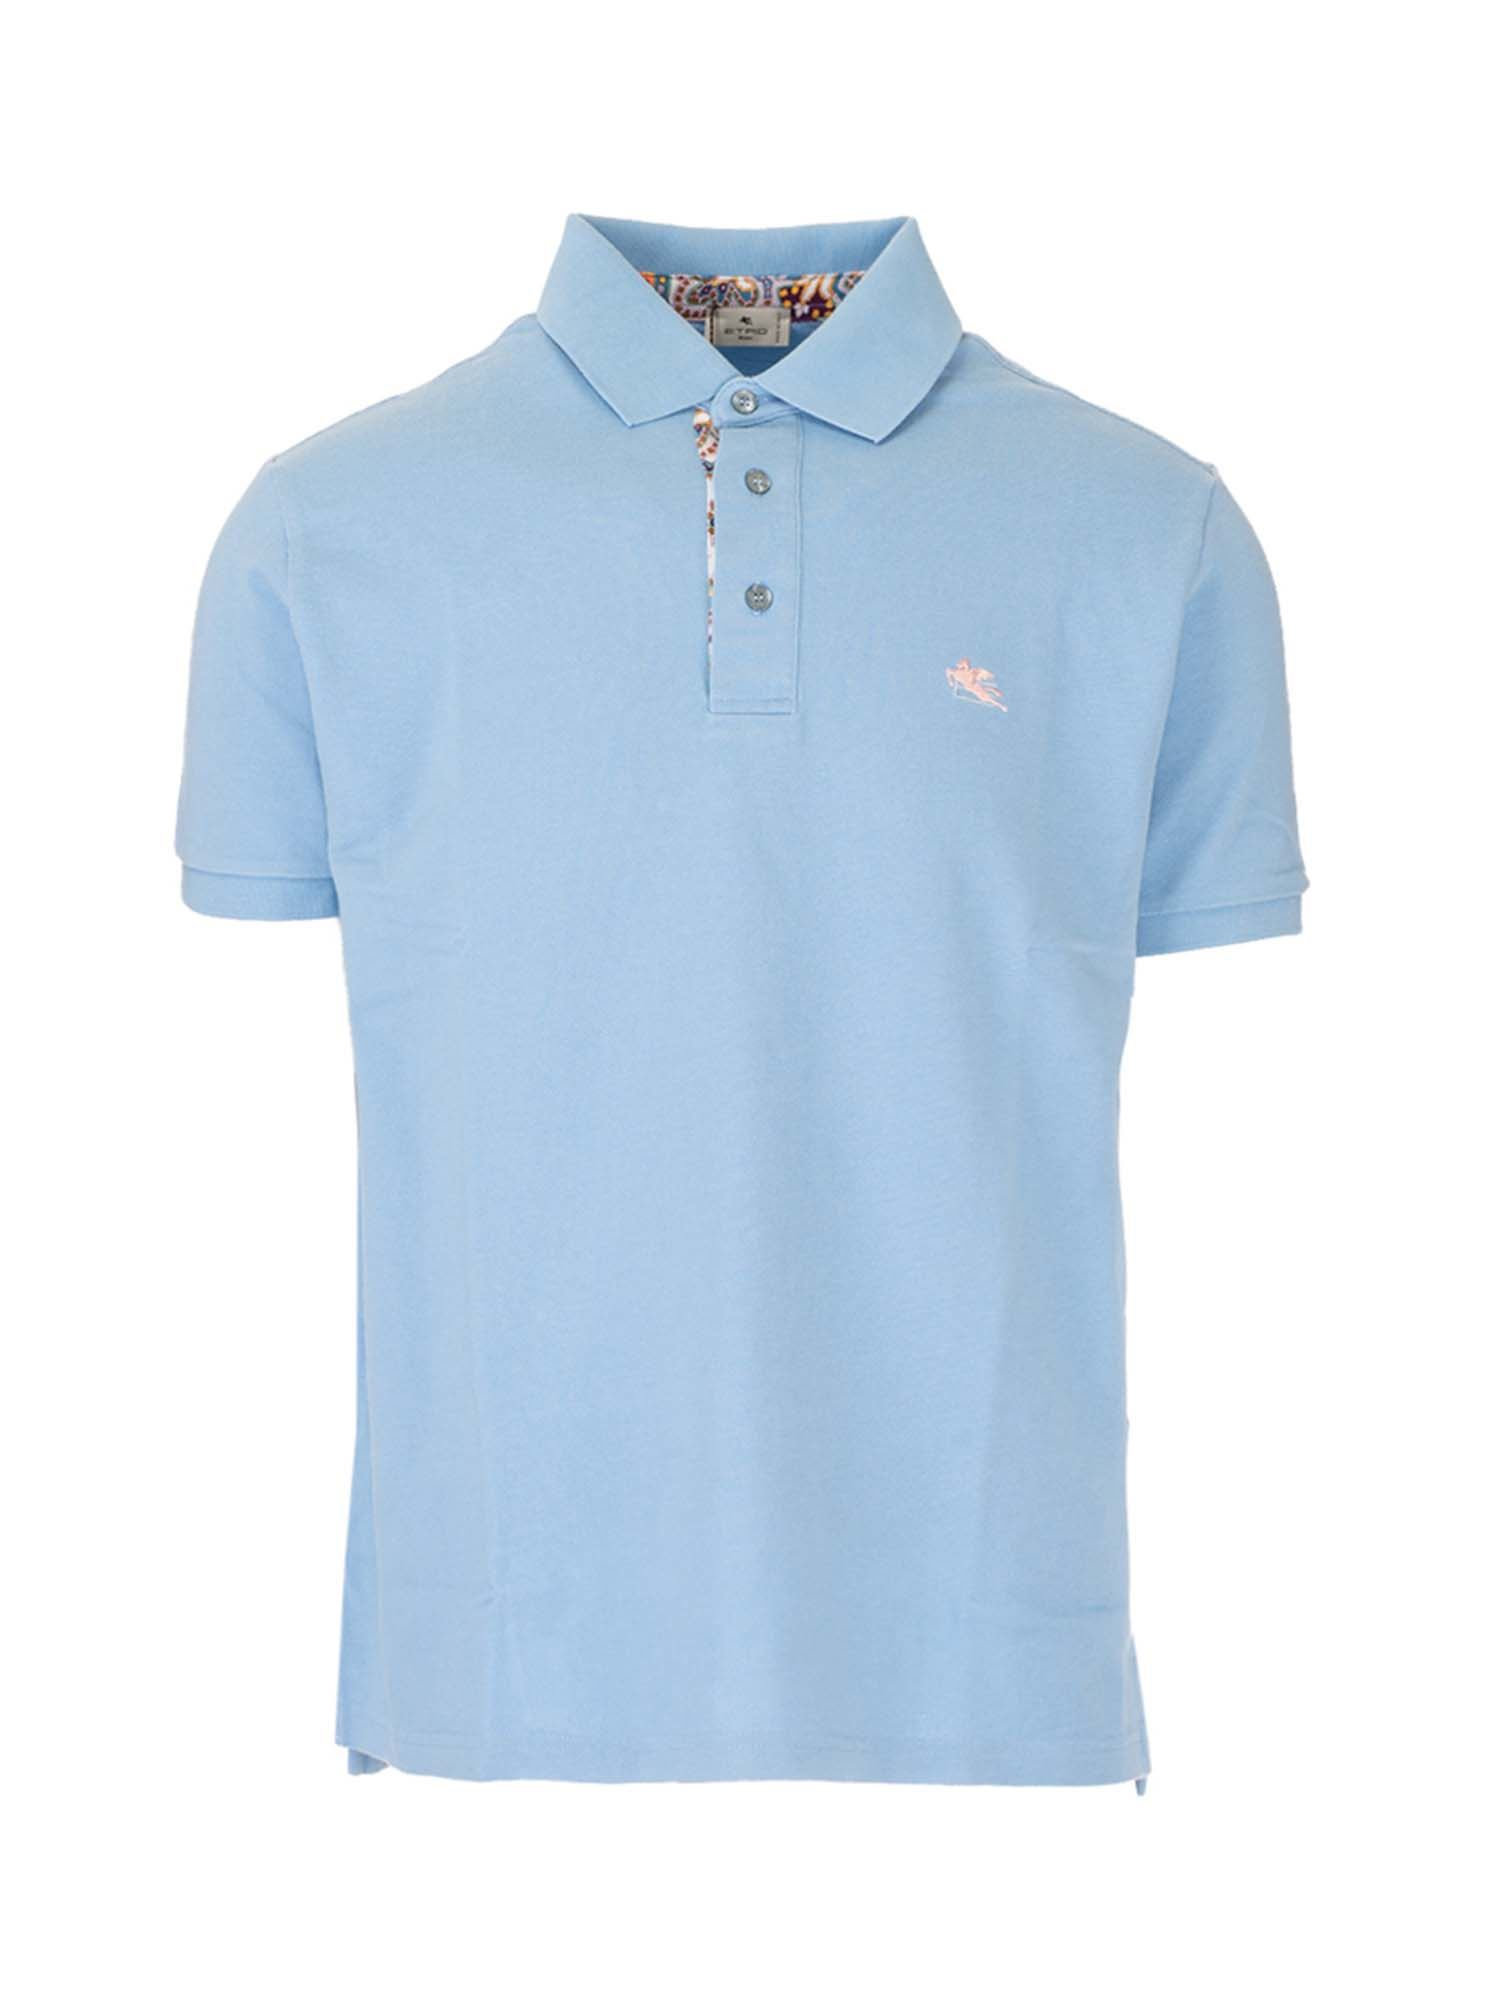 Etro LOGO POLO SHIRT IN LIGHT BLUE